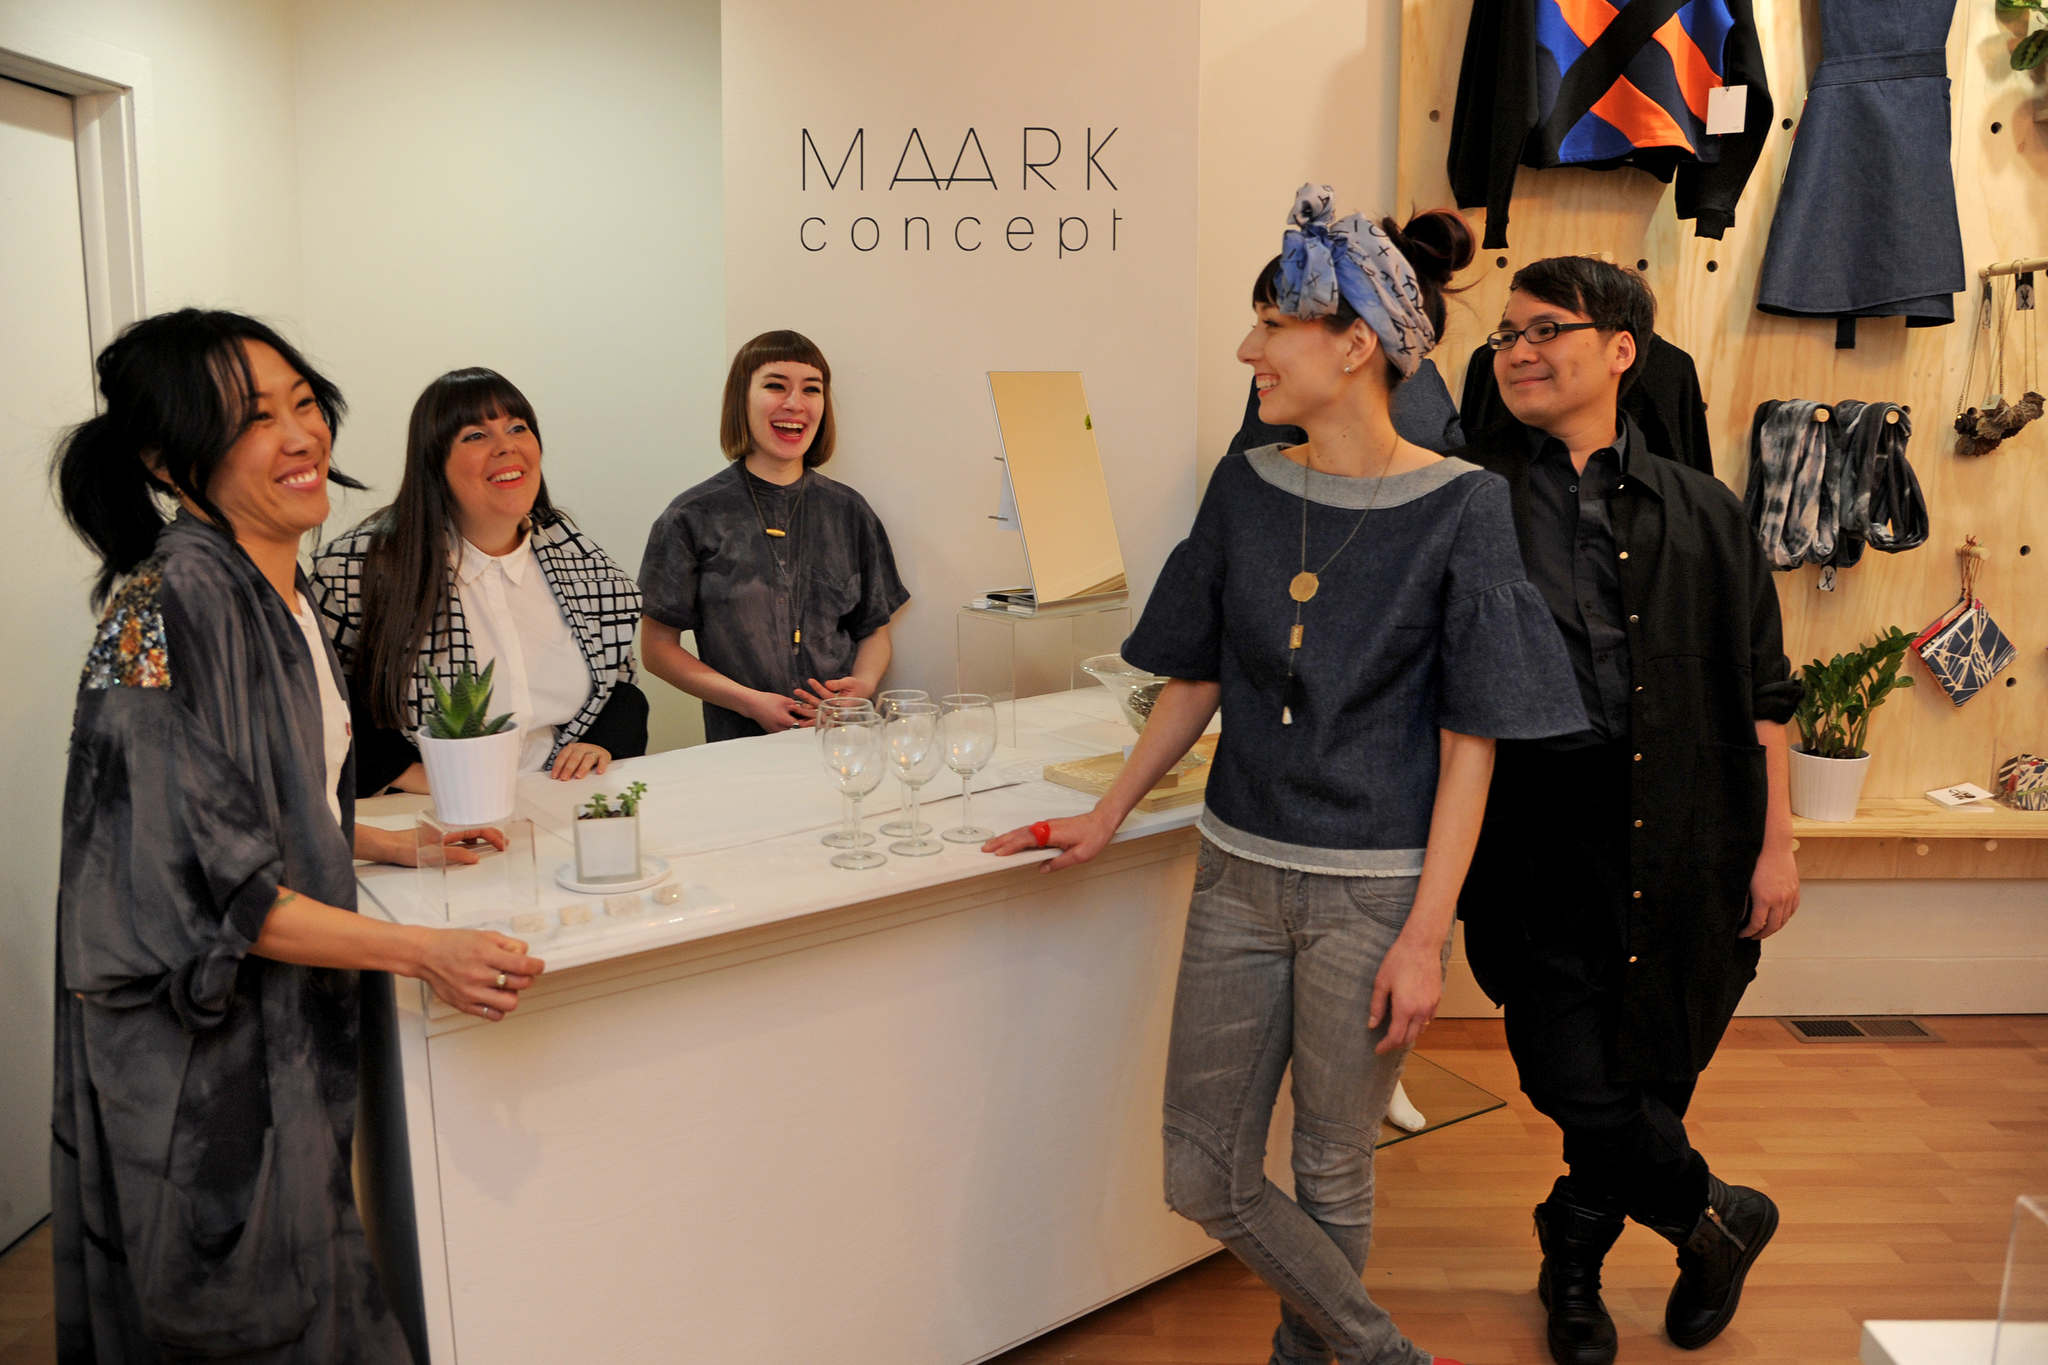 Maark Concept designers (from left) Pia Panaligan, Nicole Haddad, Samantha Connors, Melissa Choi, and Ethan Nguyen. TOM GRALISH / Staff Photographer